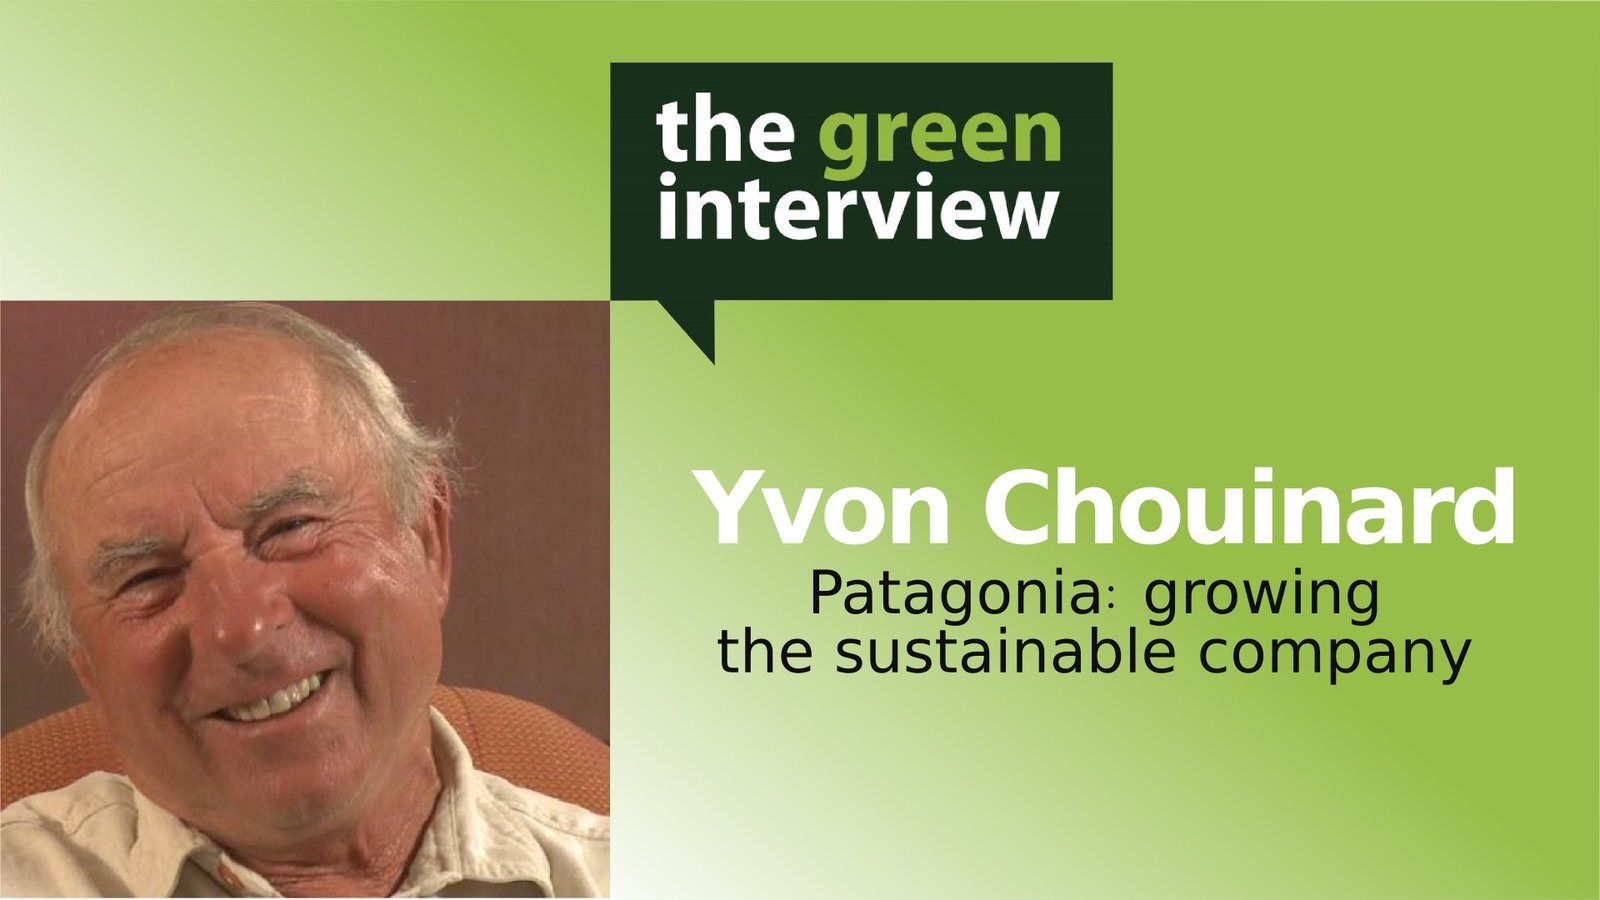 Yvon Chouinard: Patagonia - Growing the Sustainable Company